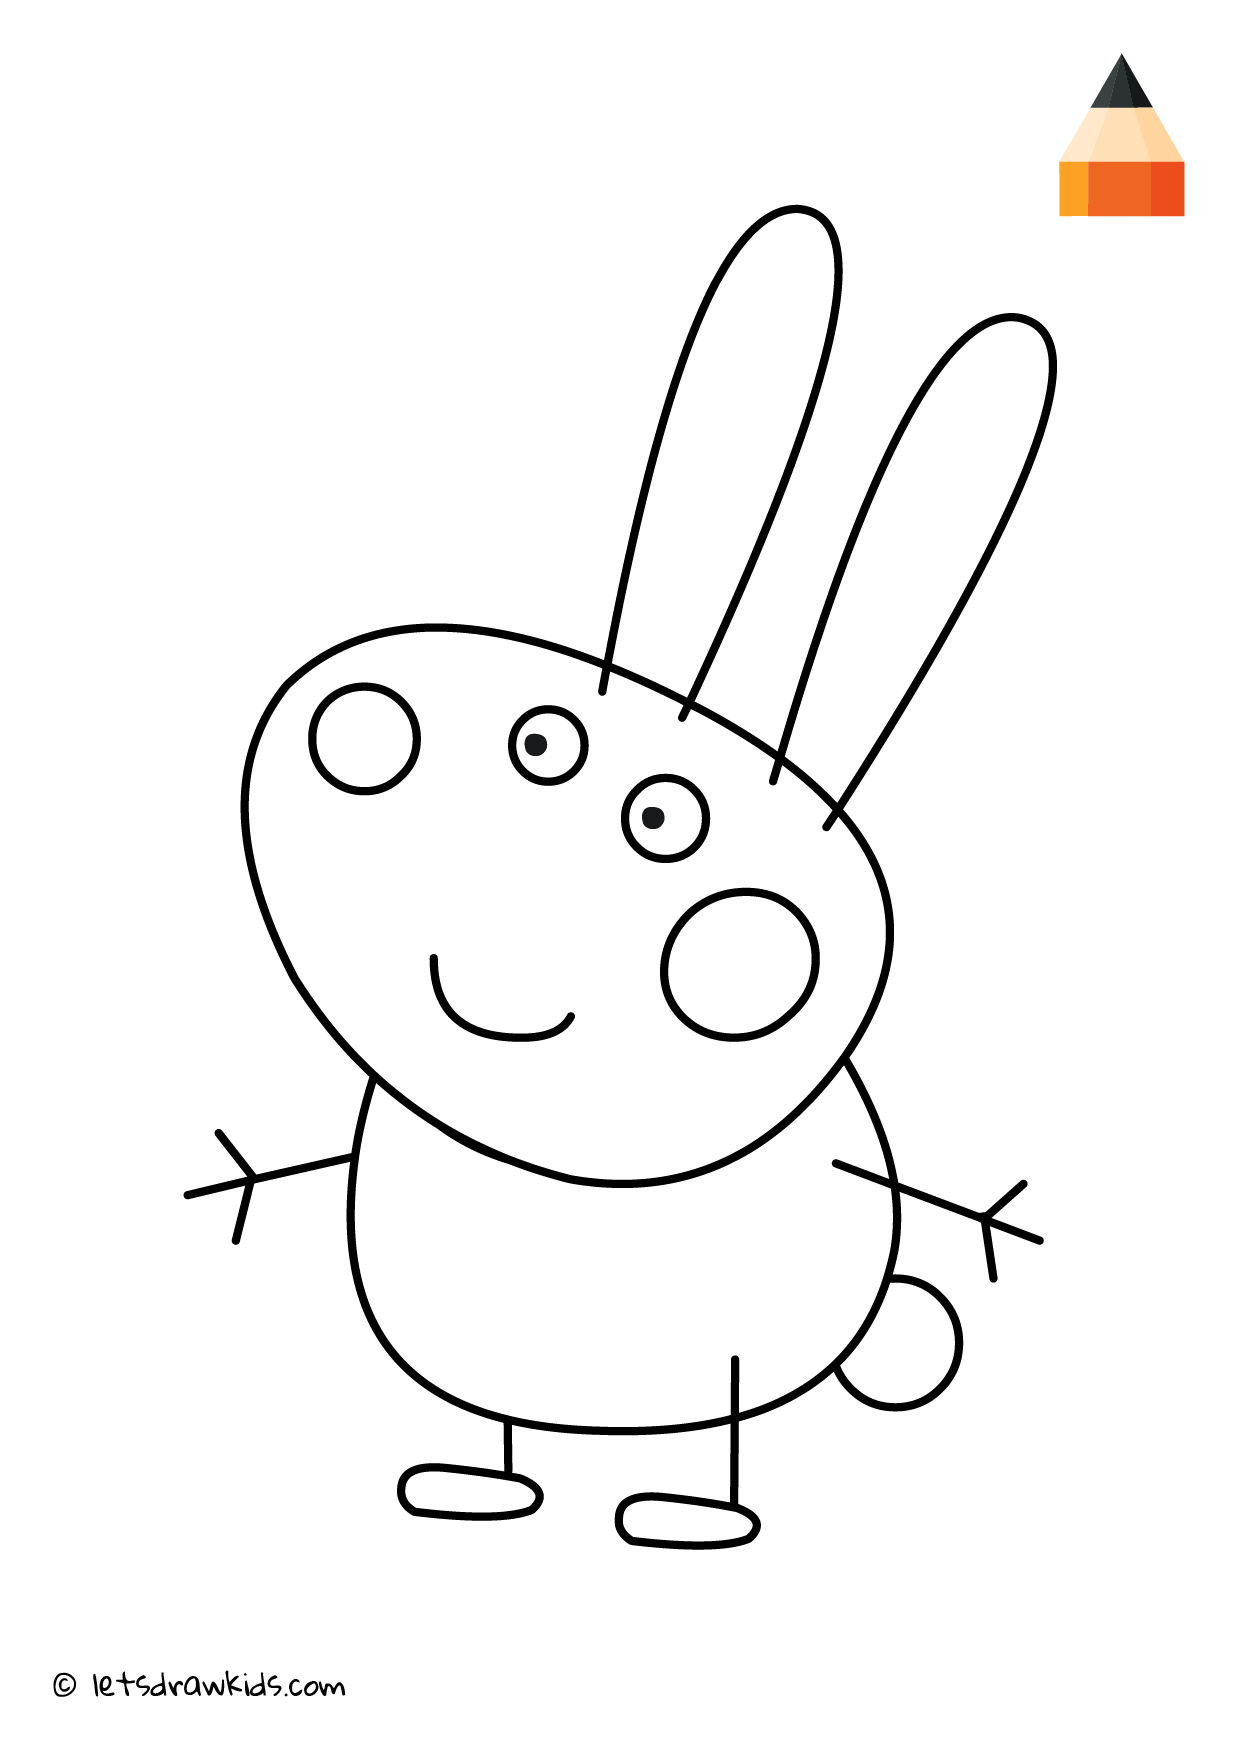 Coloring Page Peppa Pig Richard Rabbit Coloring